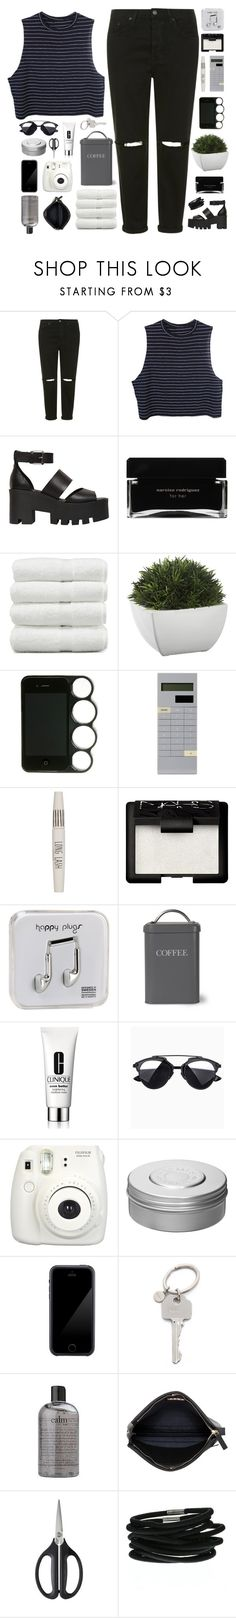 """☾ i love it when you go crazy"" by thundxrstorms ❤ liked on Polyvore featuring Topshop, Windsor Smith, Narciso Rodriguez, Linum Home Textiles, Crate and Barrel, Mark's, NARS Cosmetics, Happy Plugs, Garden Trading and Clinique"